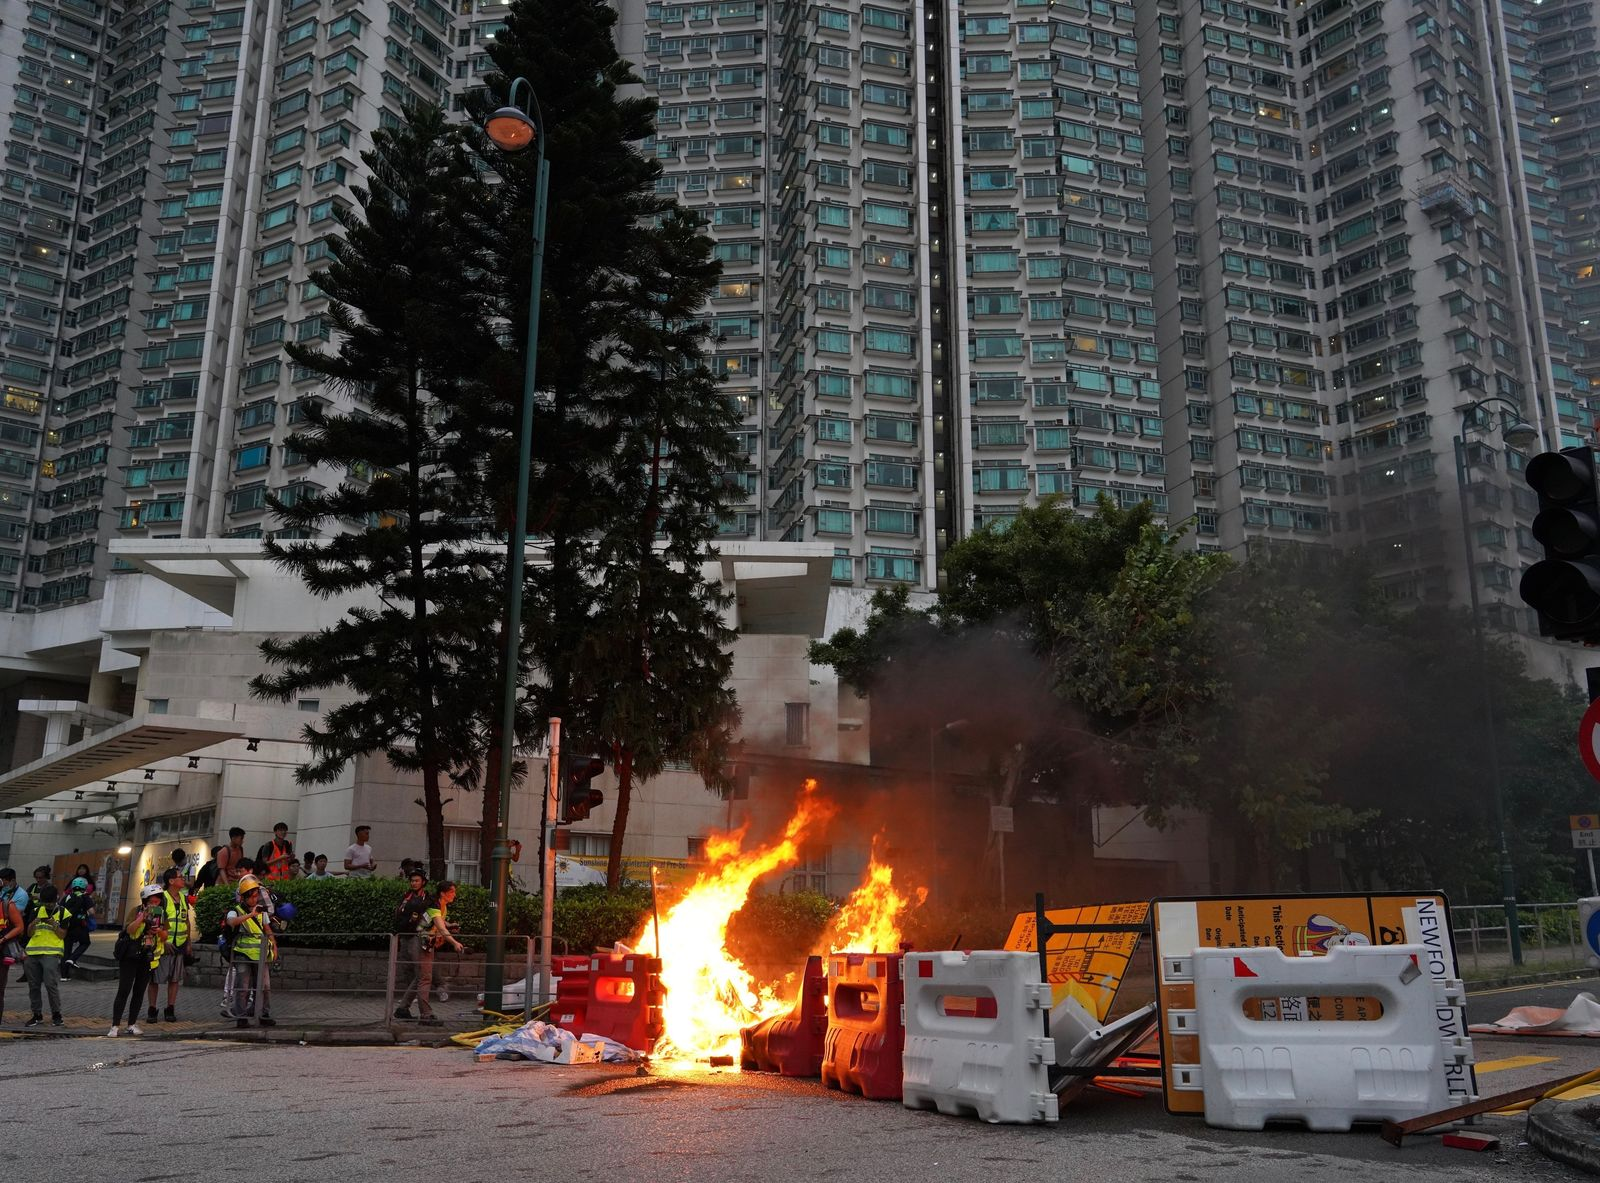 Firemen try to douse fire after protesters set fire to barricades and vandalized signages at Tung Chung near airport in Hong Kong, Sunday, Sept.1, 2019. (AP Photo/Vincent Yu)